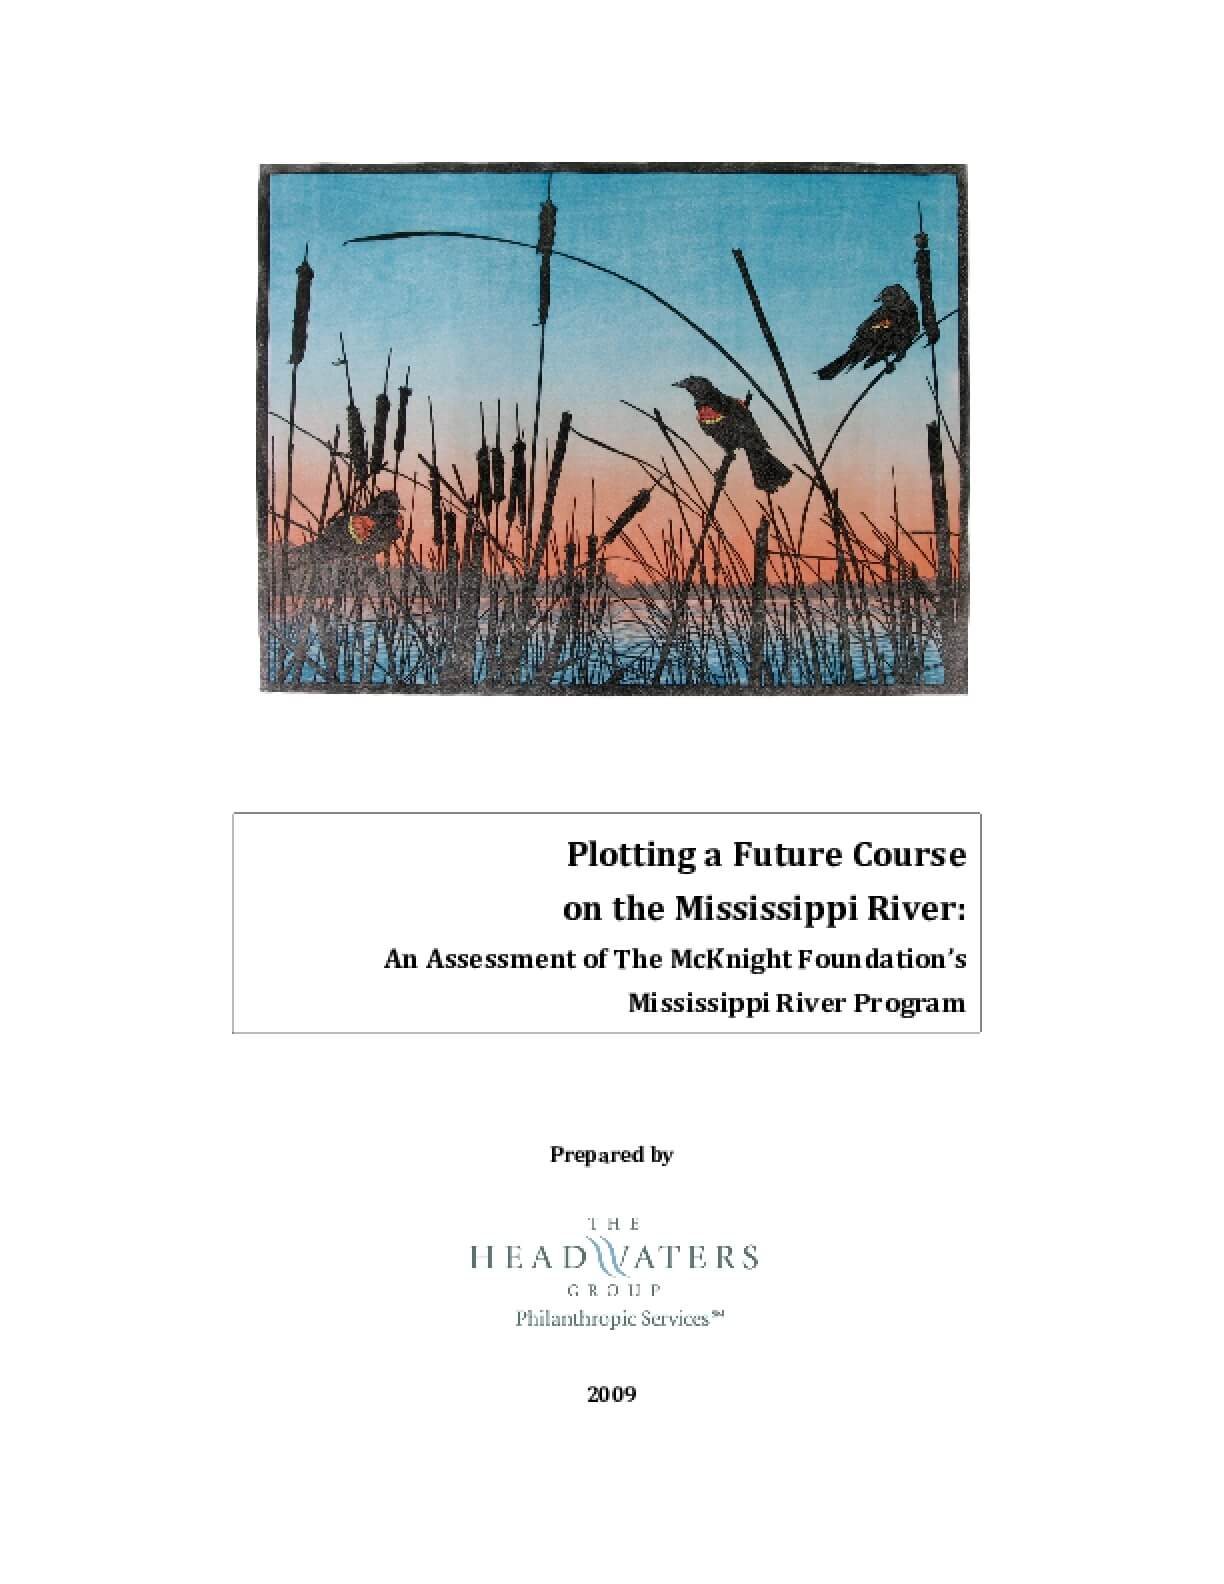 Plotting a Future Course on the Mississippi River: An Assessment of The McKnight Foundation's Mississippi River Program